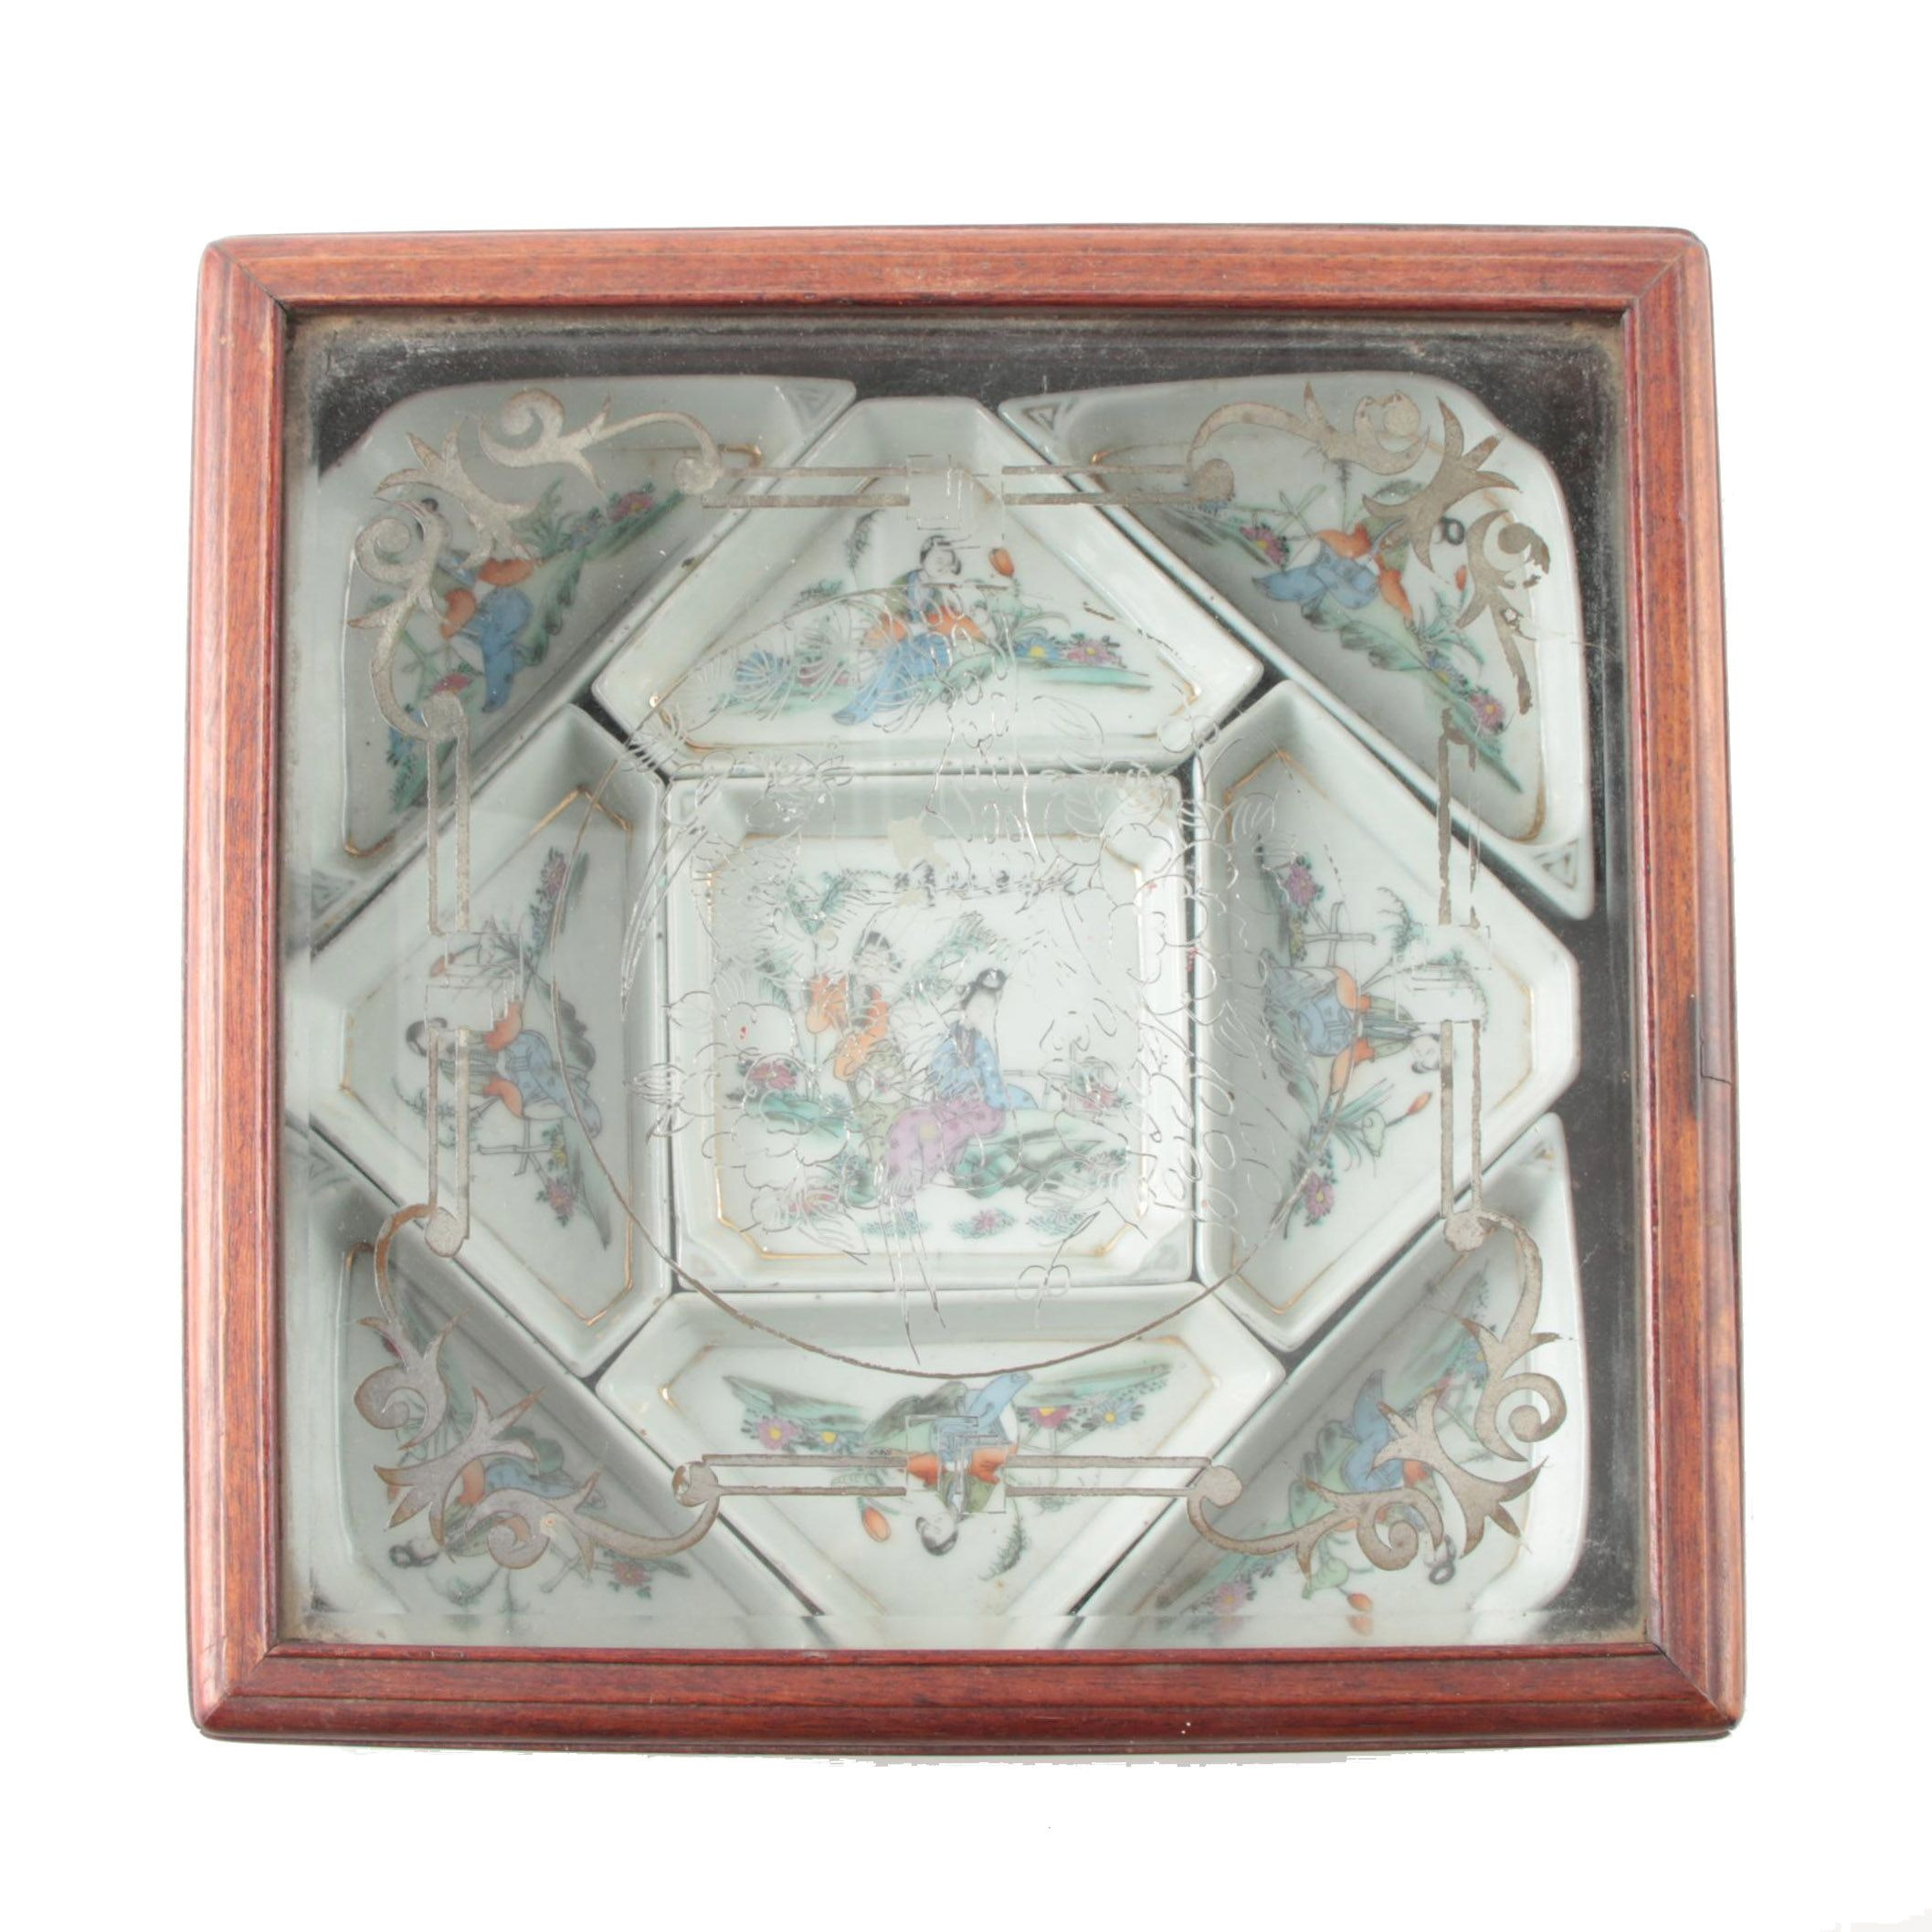 Wood Box with Asian Porcelain Dishes